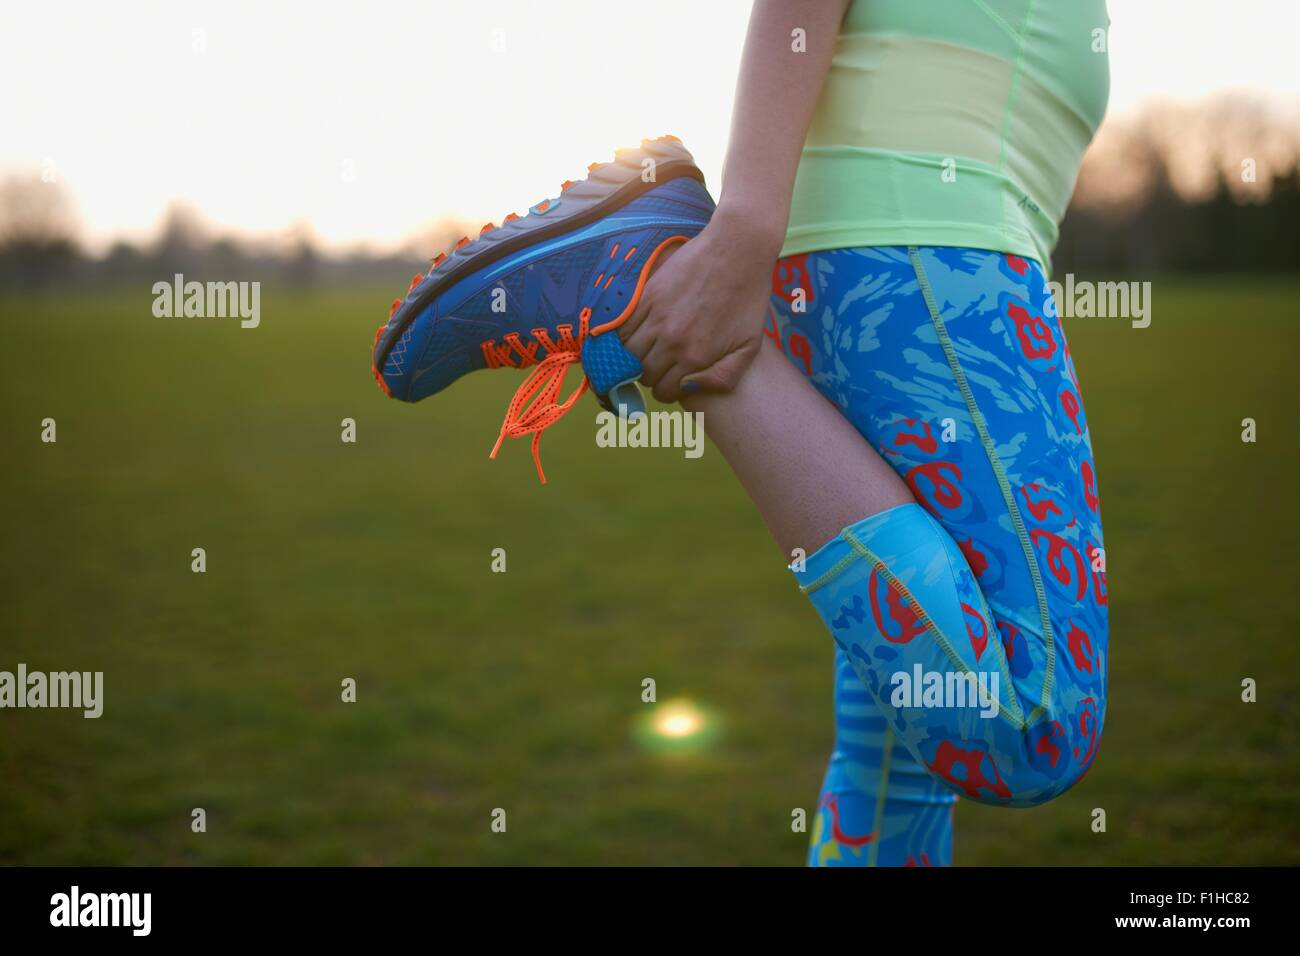 Cropped image of woman stretching leg for exercise in park - Stock Image